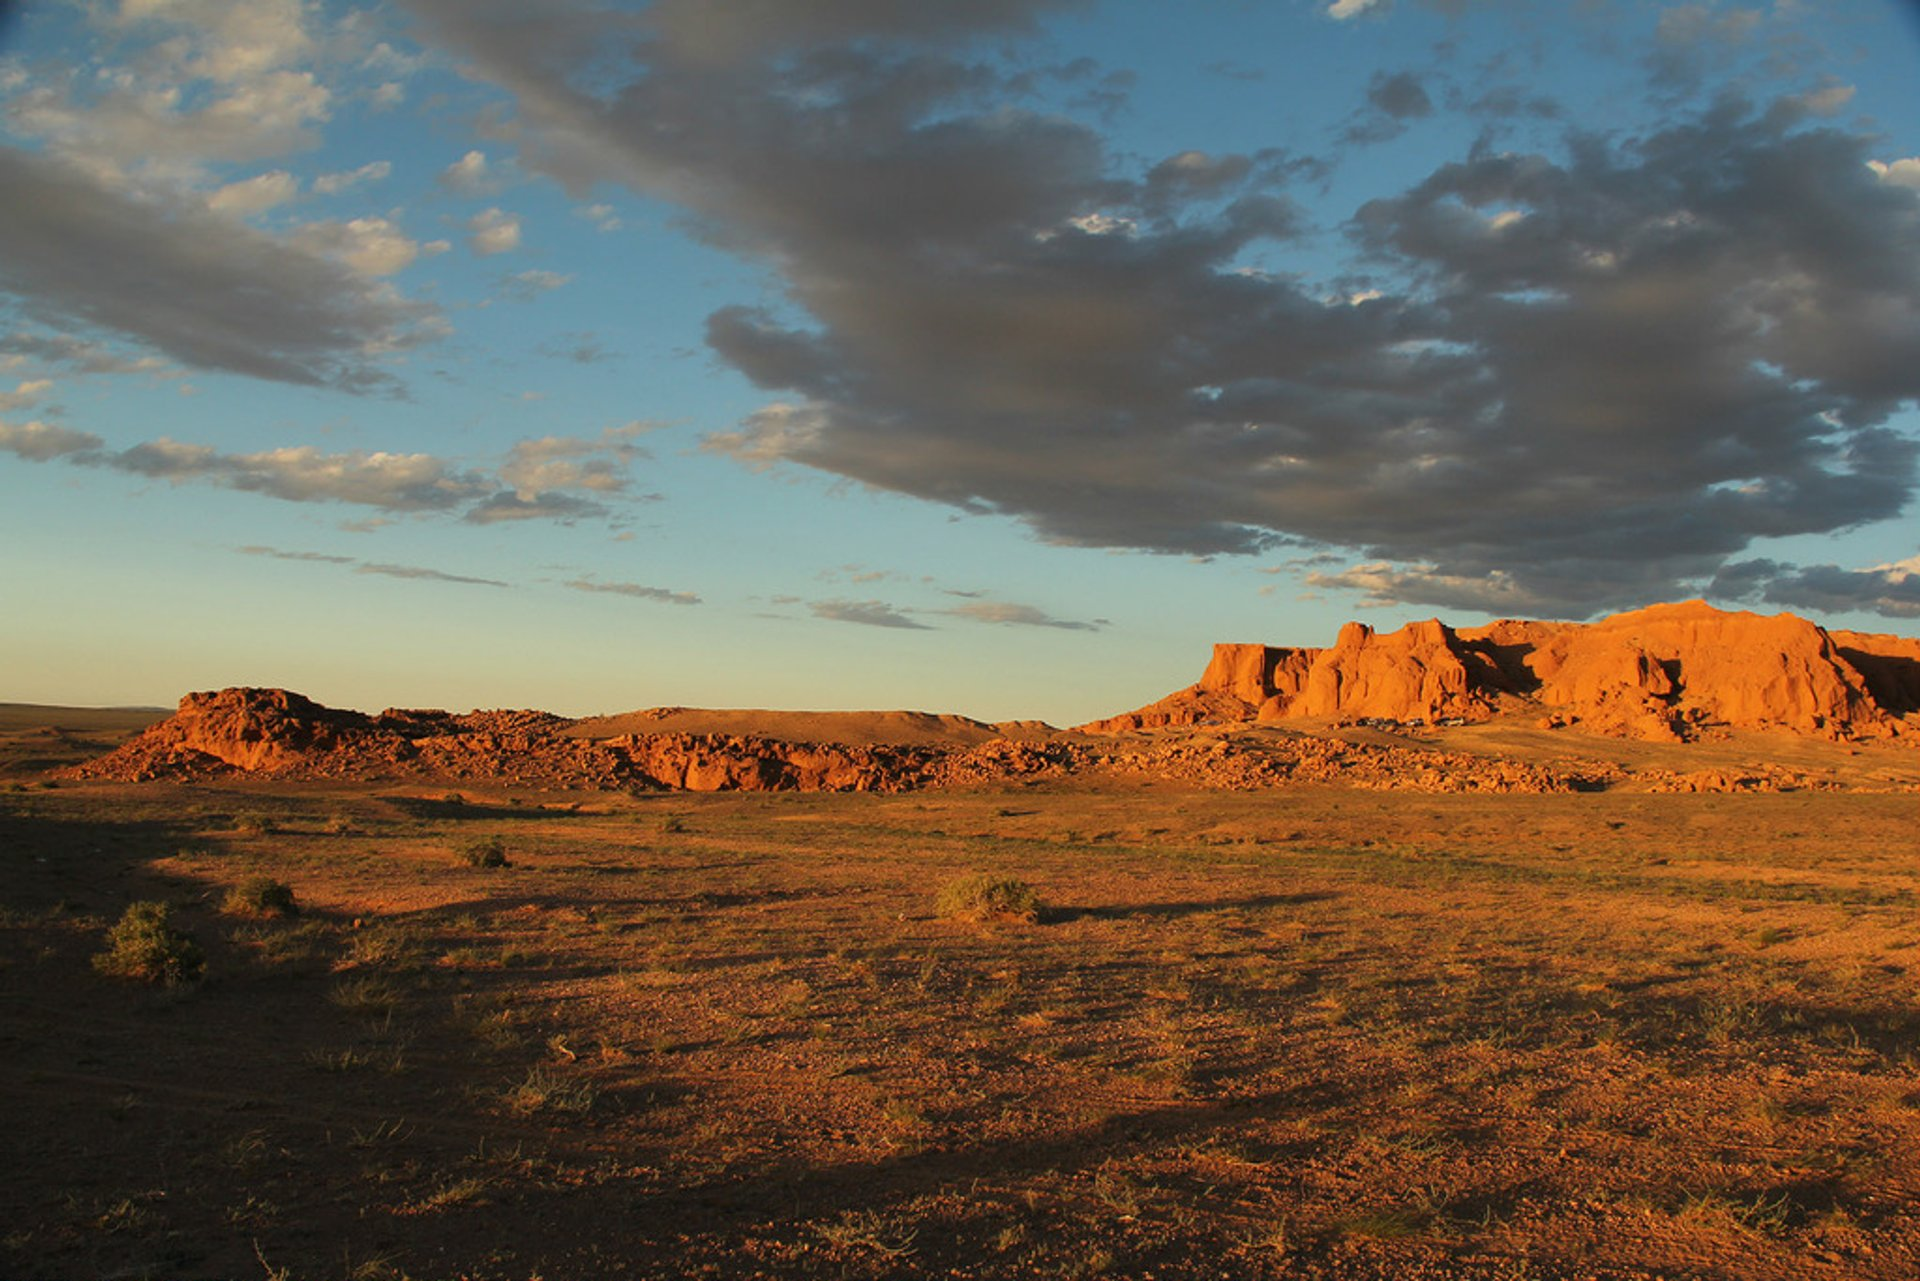 Sunset at the Flaming Cliffs in Mongolia - Best Season 2019